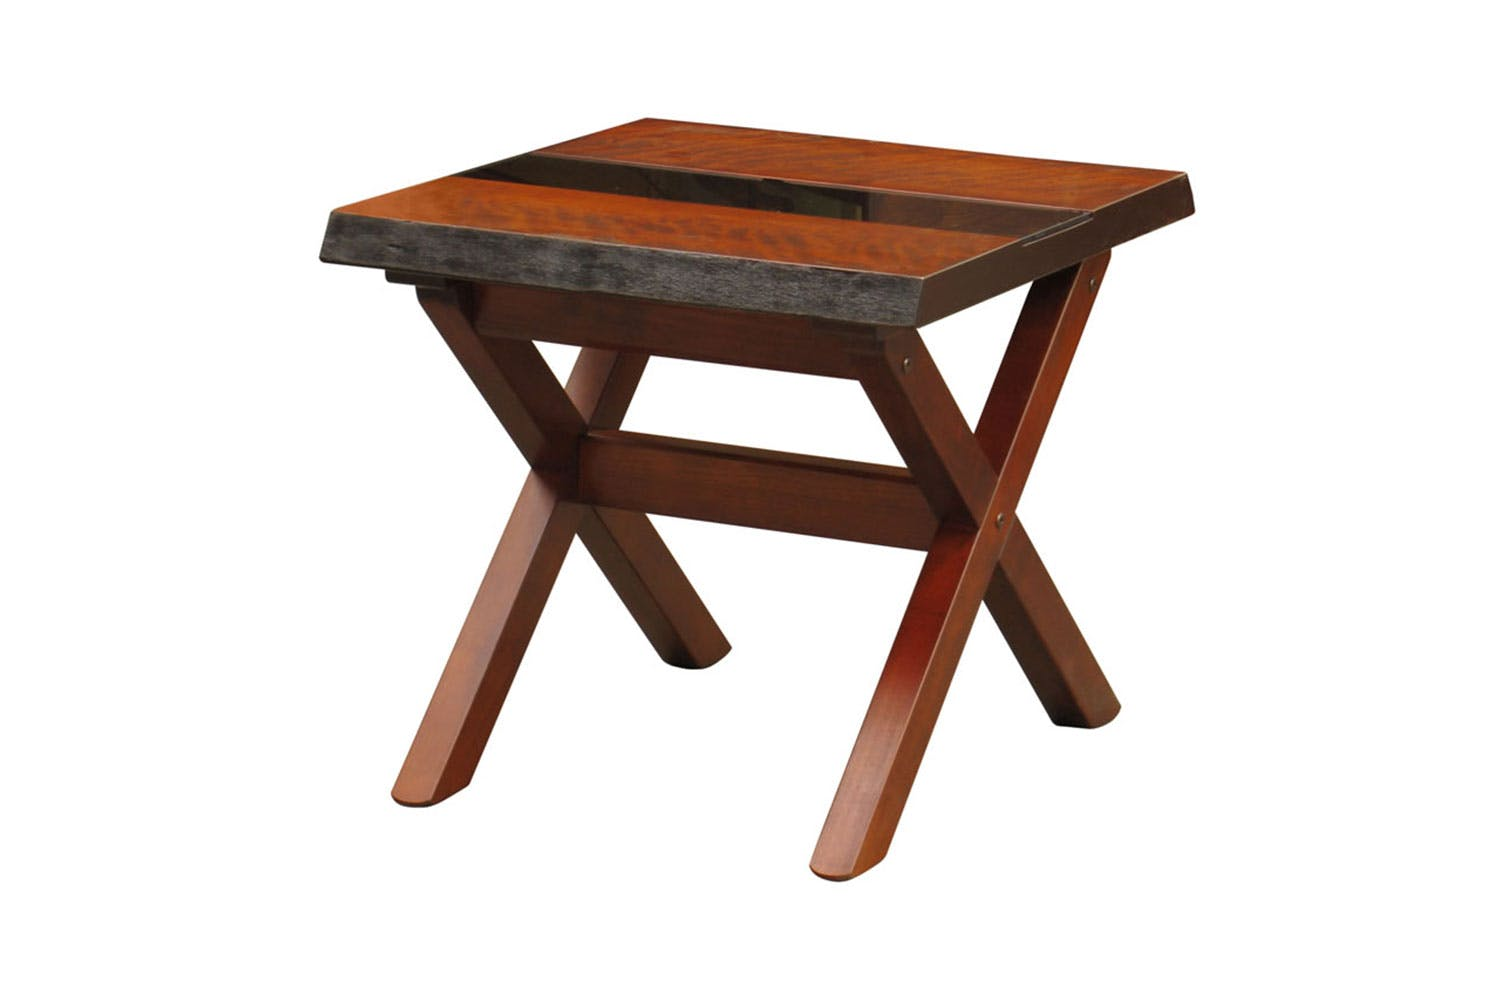 Middlemarch lamp table by otago furniture harvey norman for Lamp table harvey norman